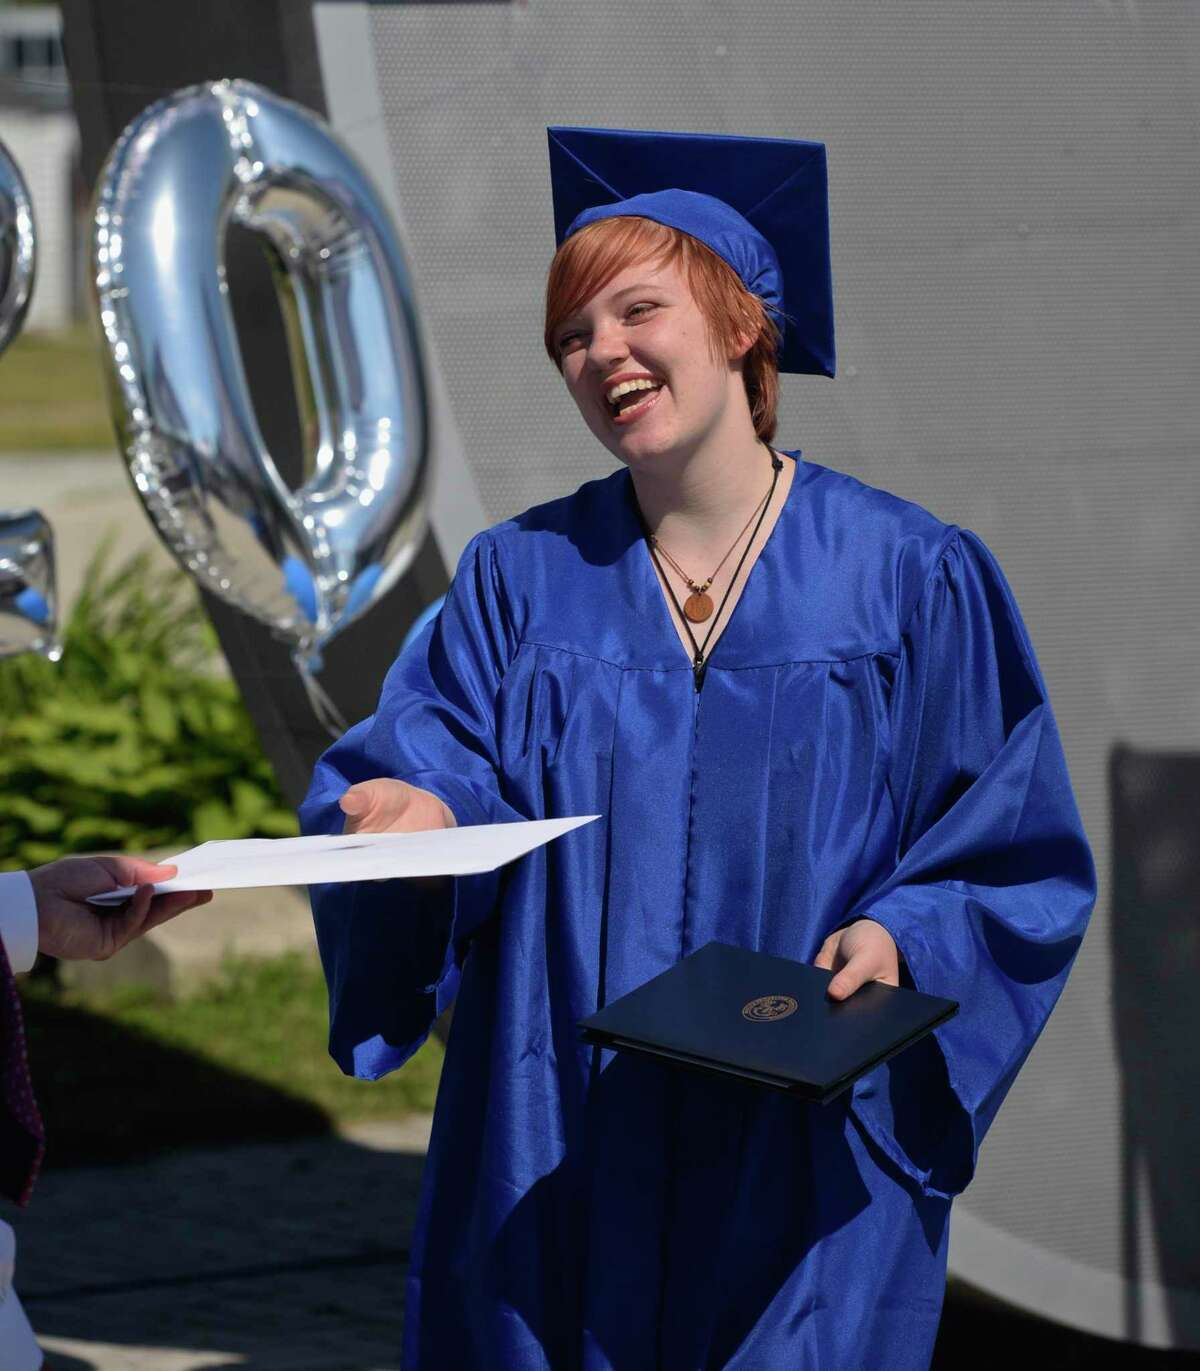 Kelsey Hall, of Danbury, culinary arts, smiles as she receives her diploma at the 2020 Abbott Technical High School graduation on Monday, June 22 in Danbury.